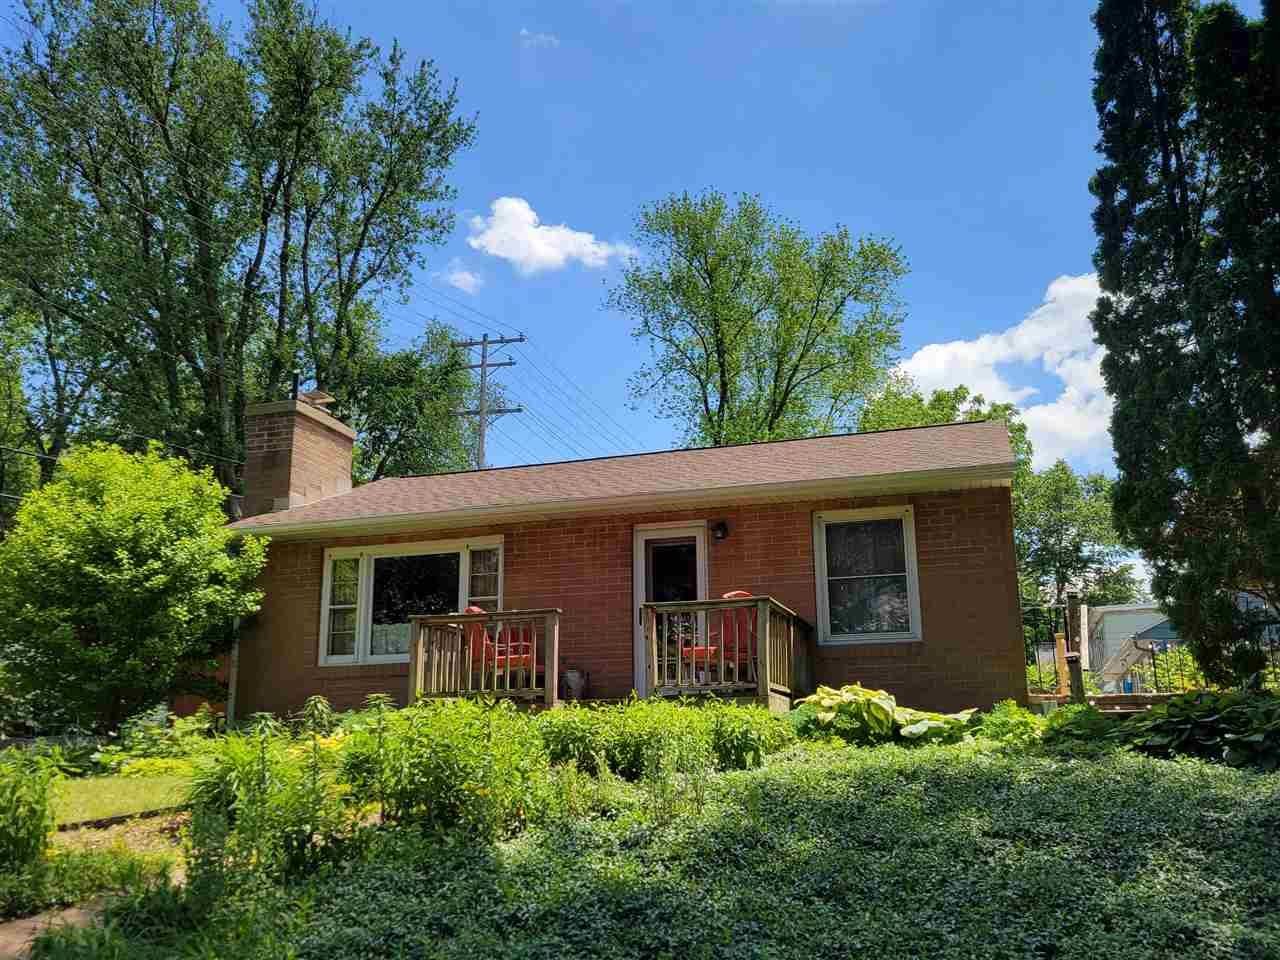 217 N Rosa Rd, Madison, WI 53705 - #: 1911638